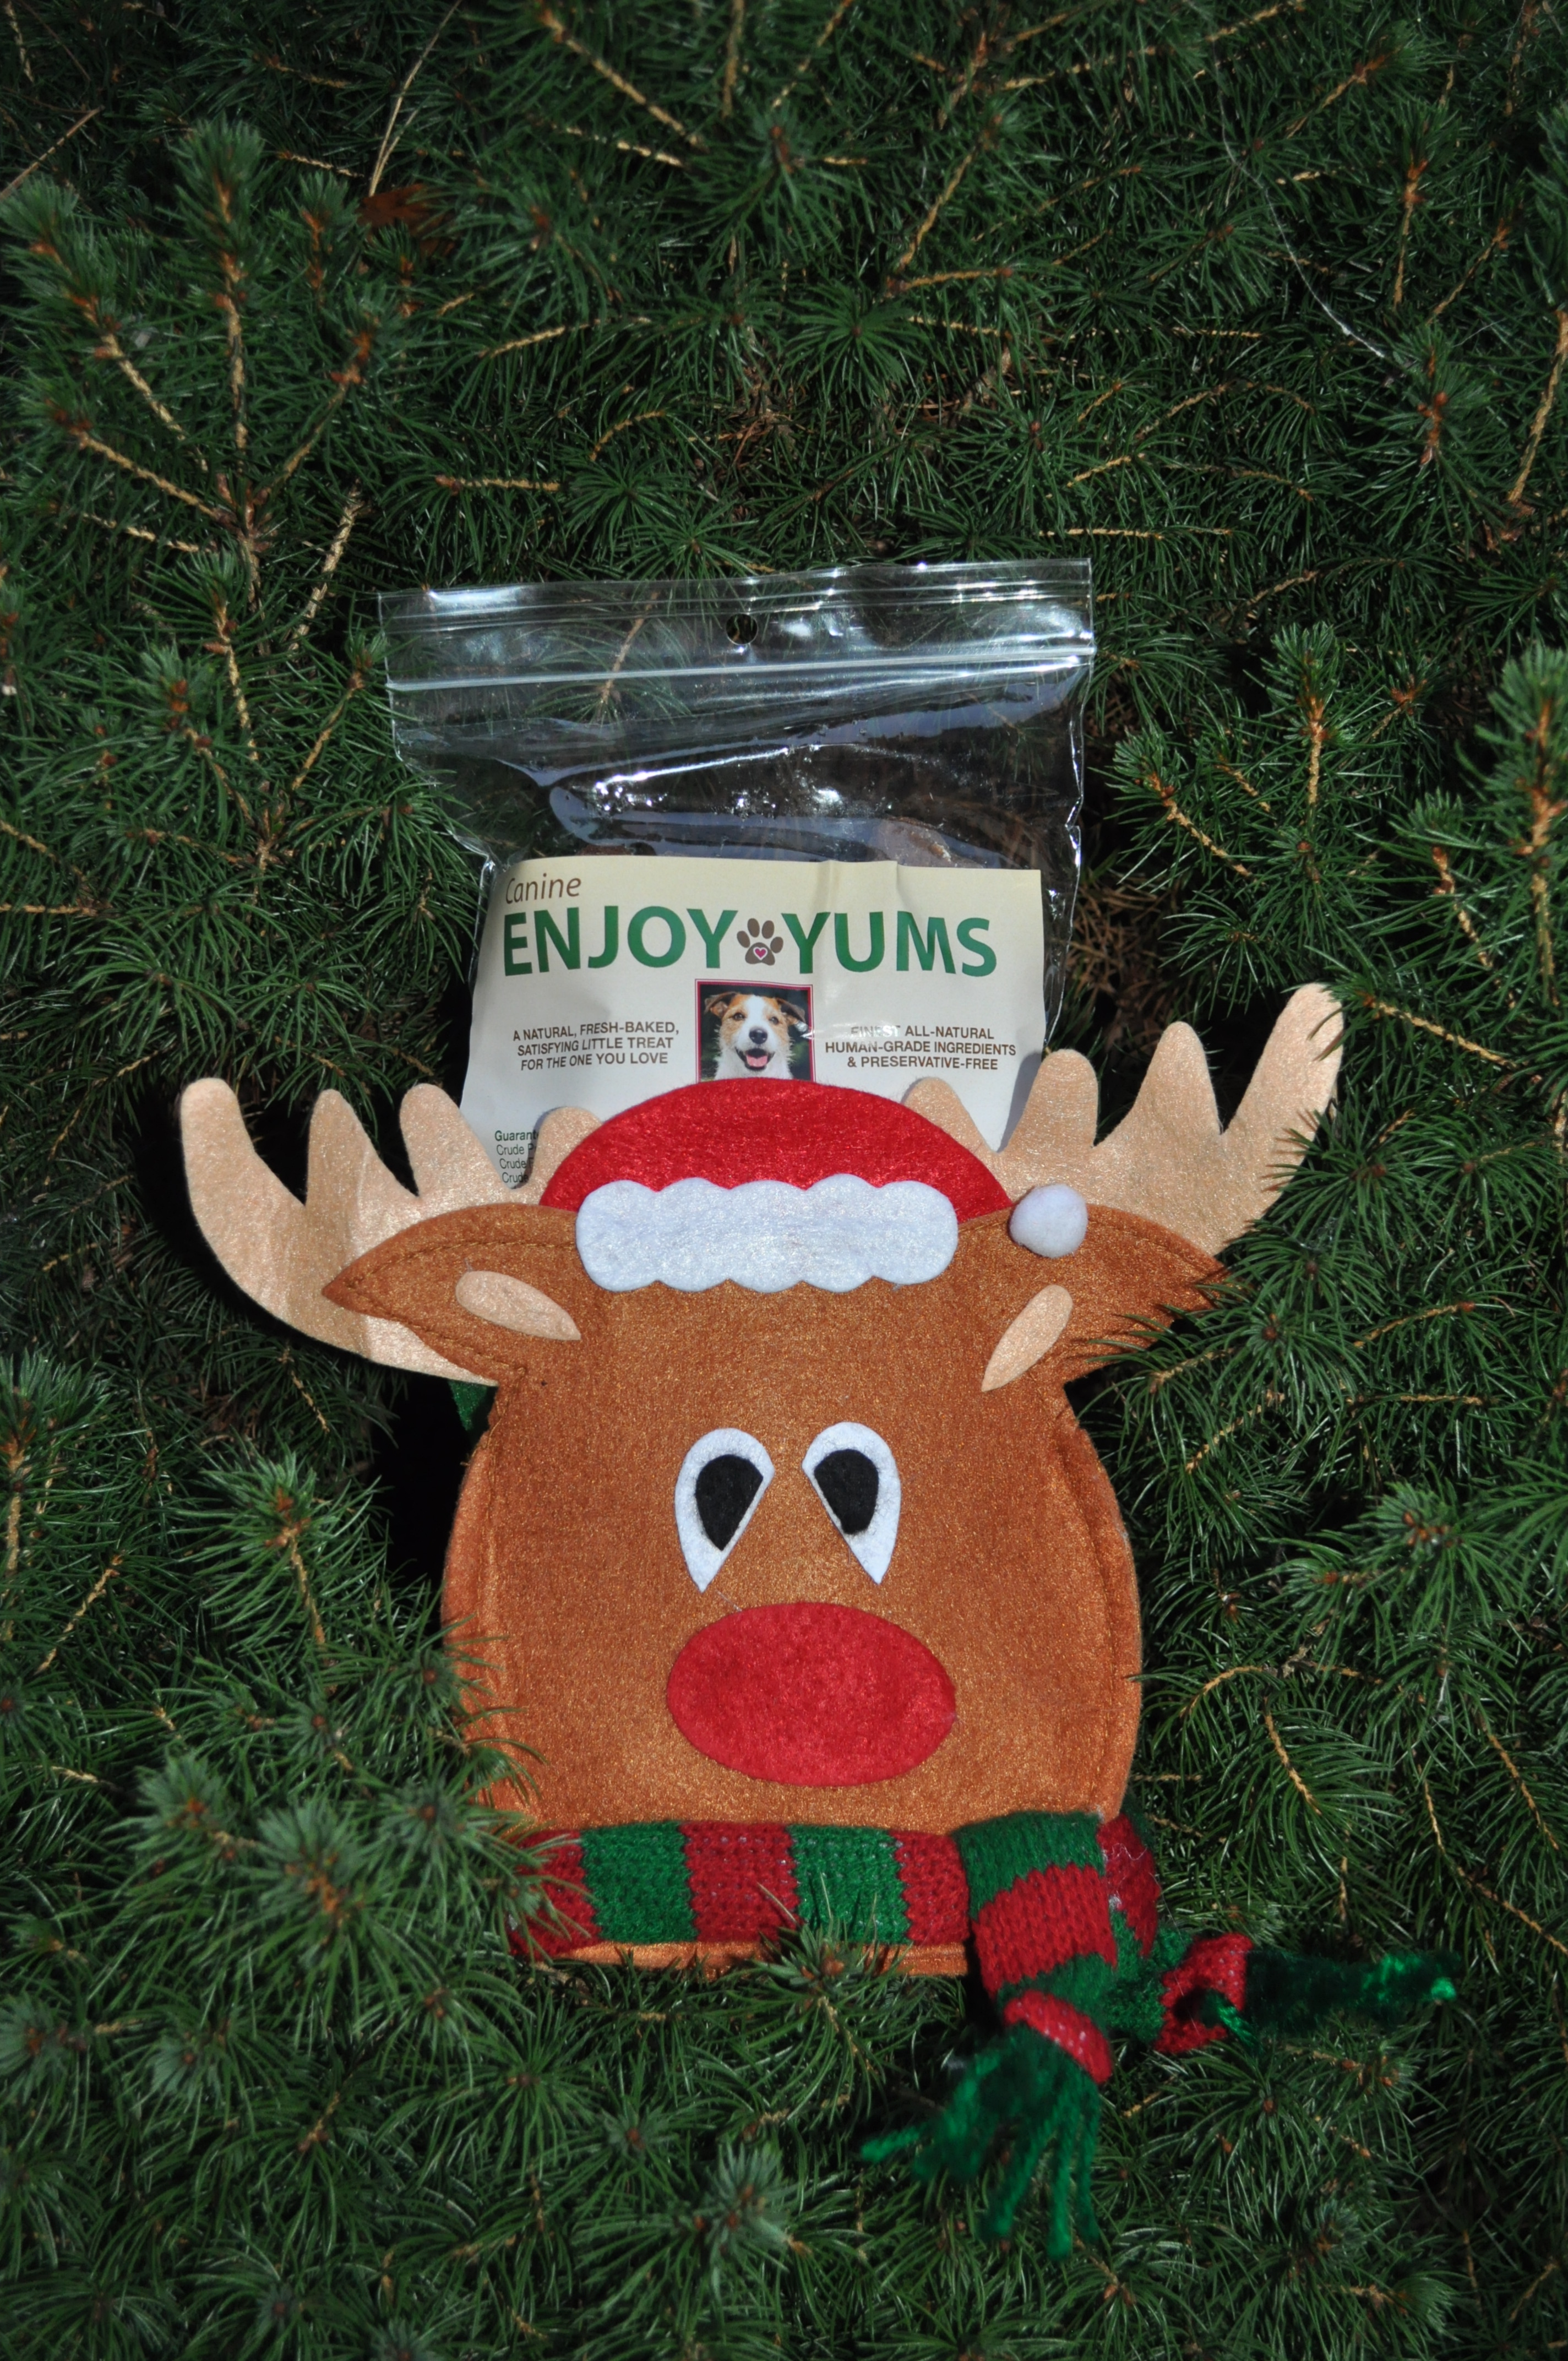 Reindeer Canine Enjoy Yums Bag